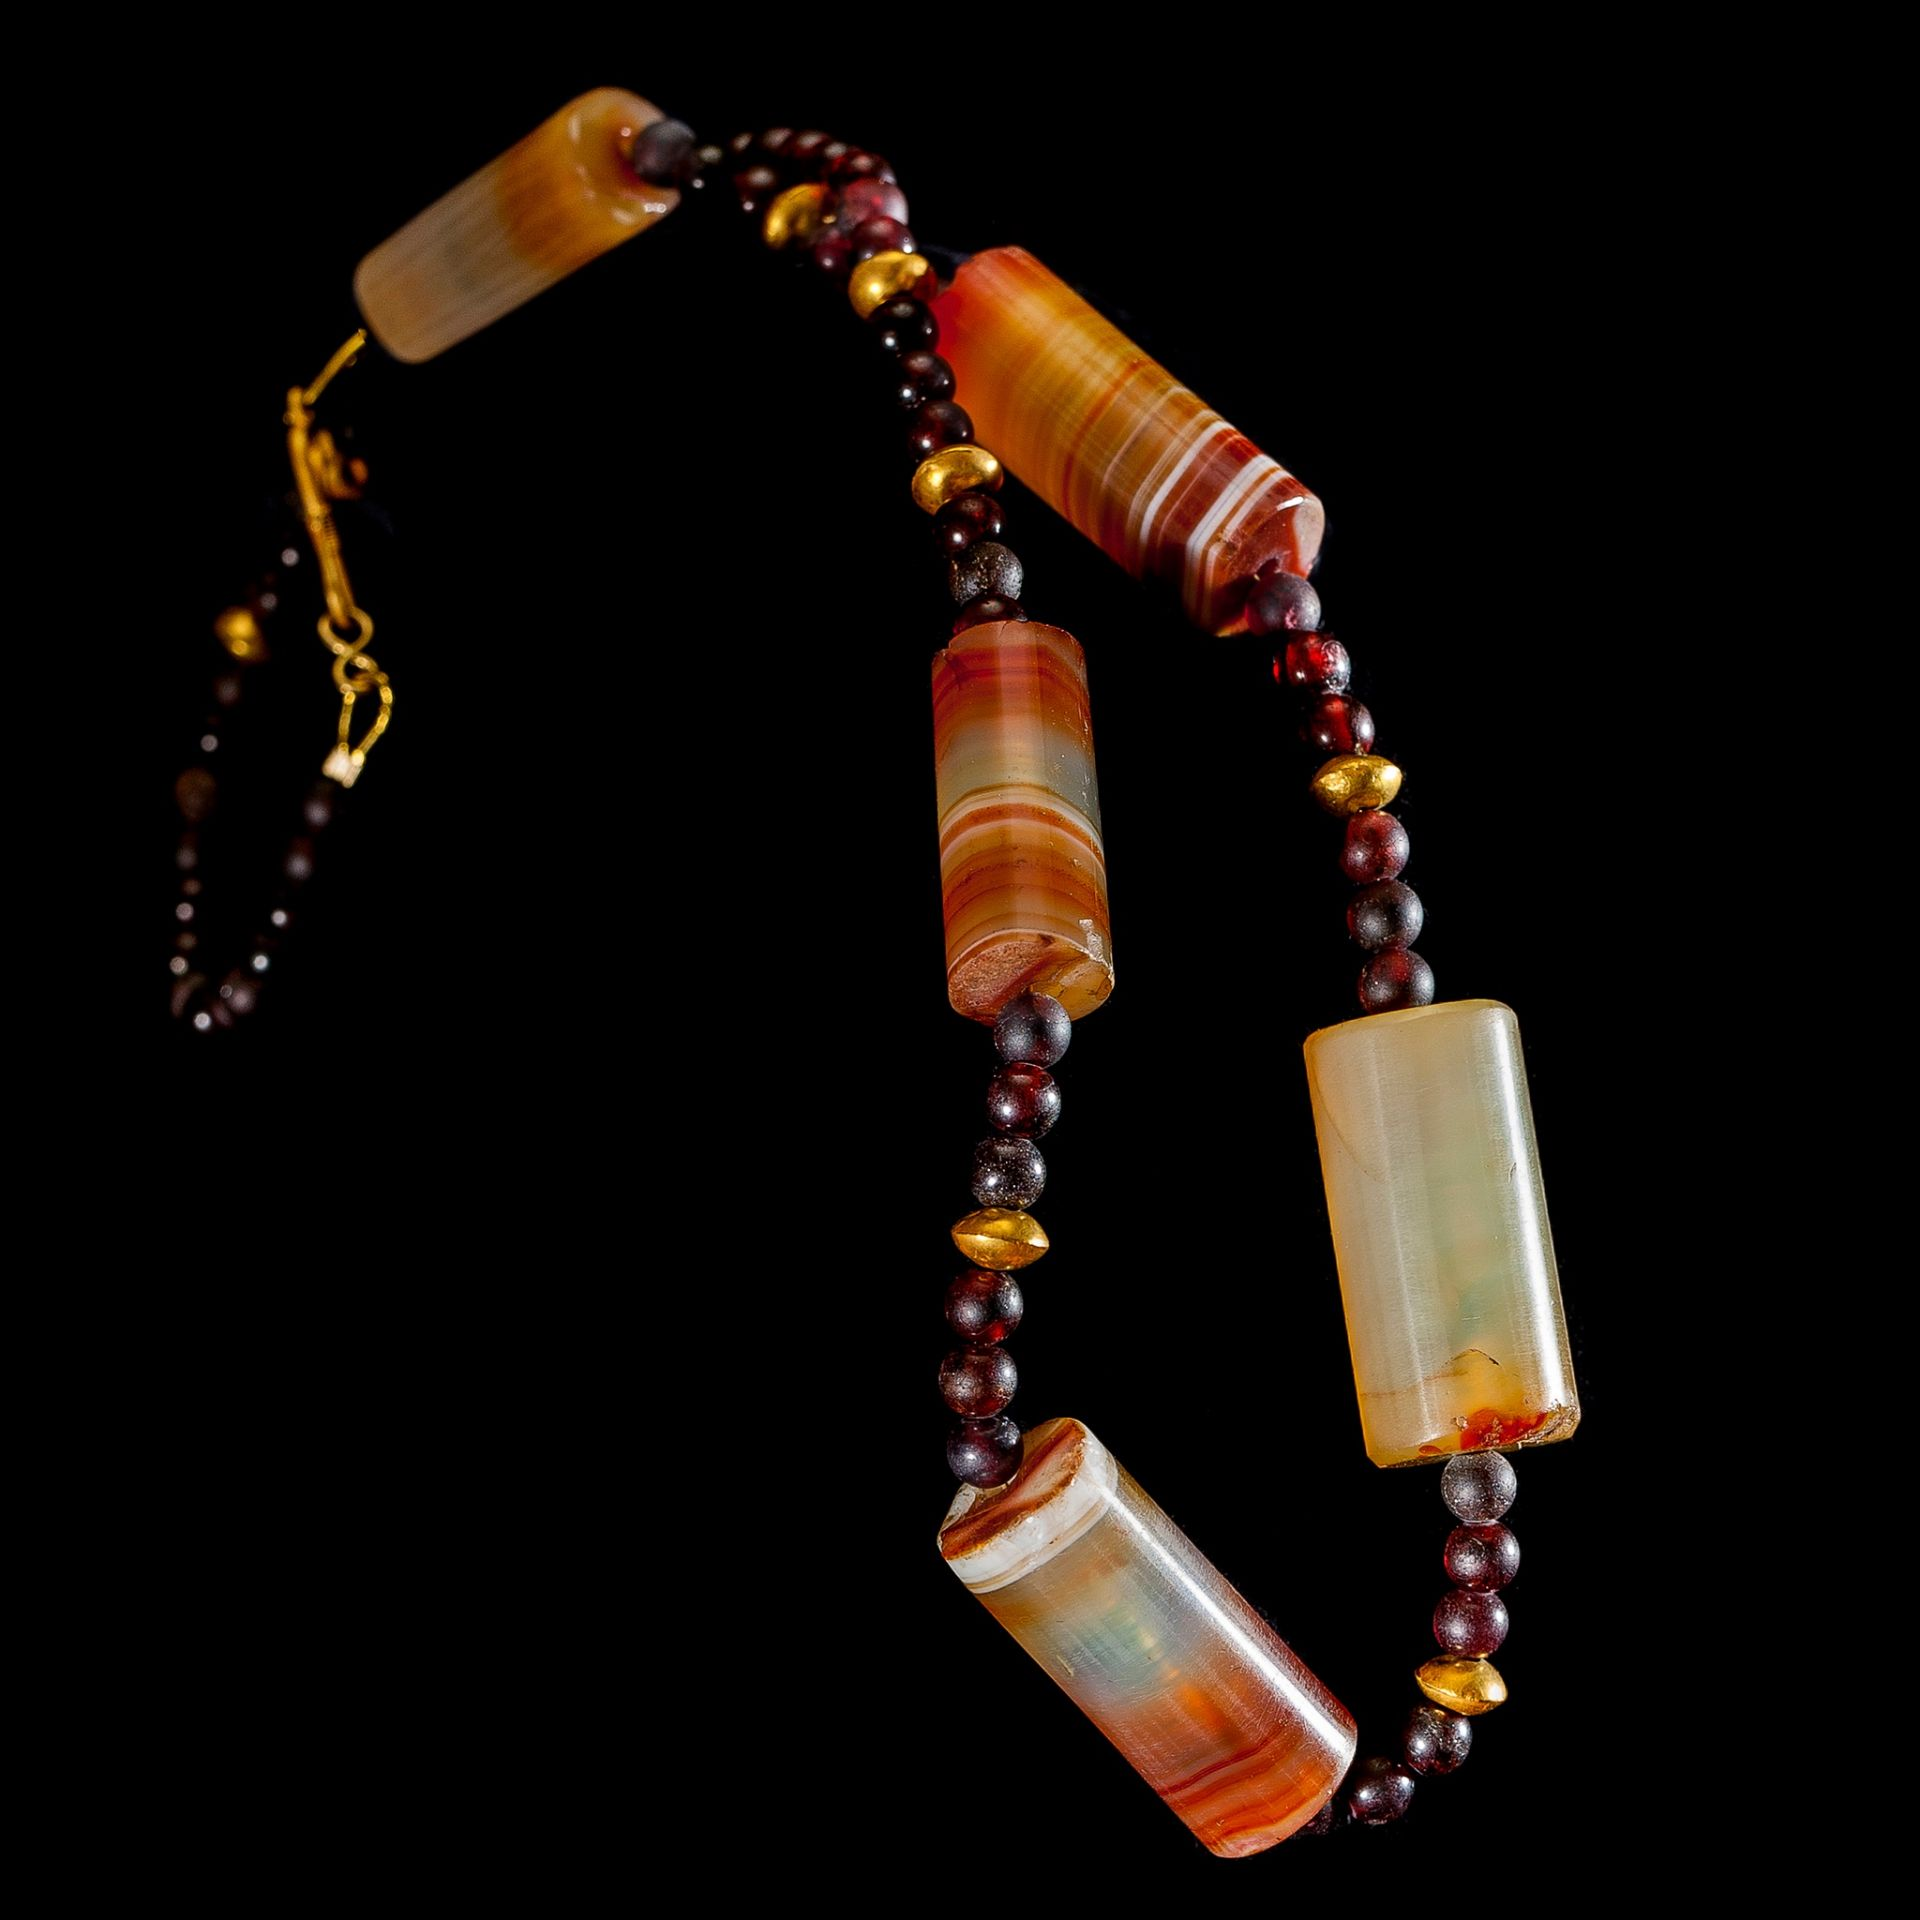 HELLENISTIC GARNET, AGATE AND GOLD BEAD NECKLACE EASTERN MEDITERRANEAN, 3RD - 1ST CENTURY B.C. - Image 2 of 2